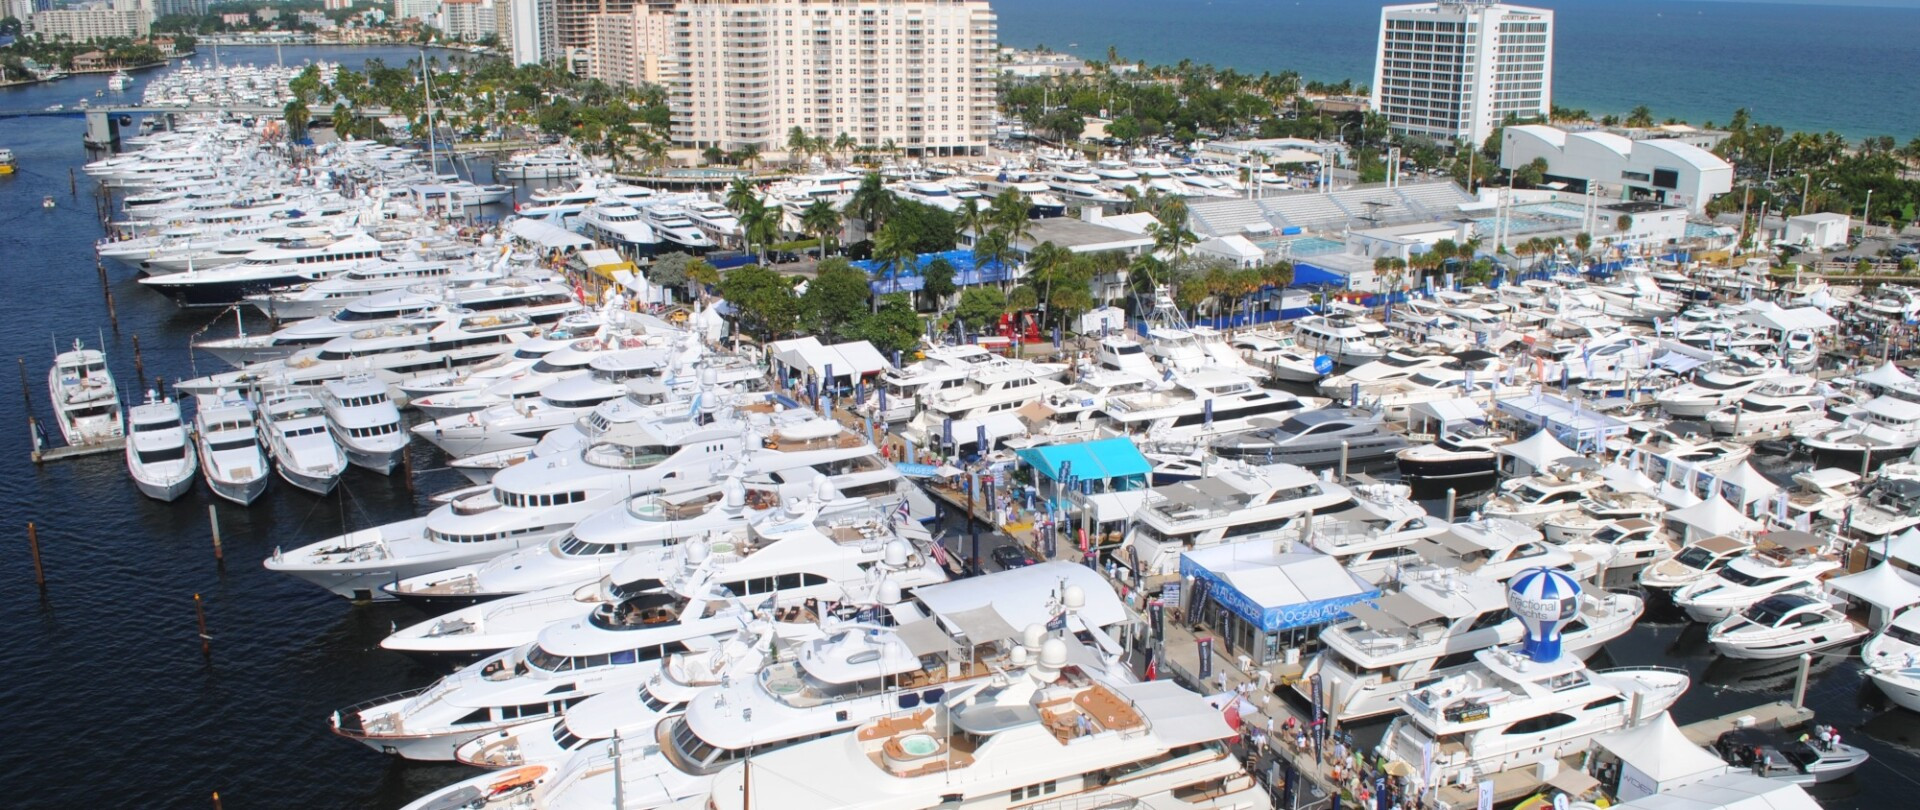 Edmiston at the Fort Lauderdale International Boat Show 2018 photo 1